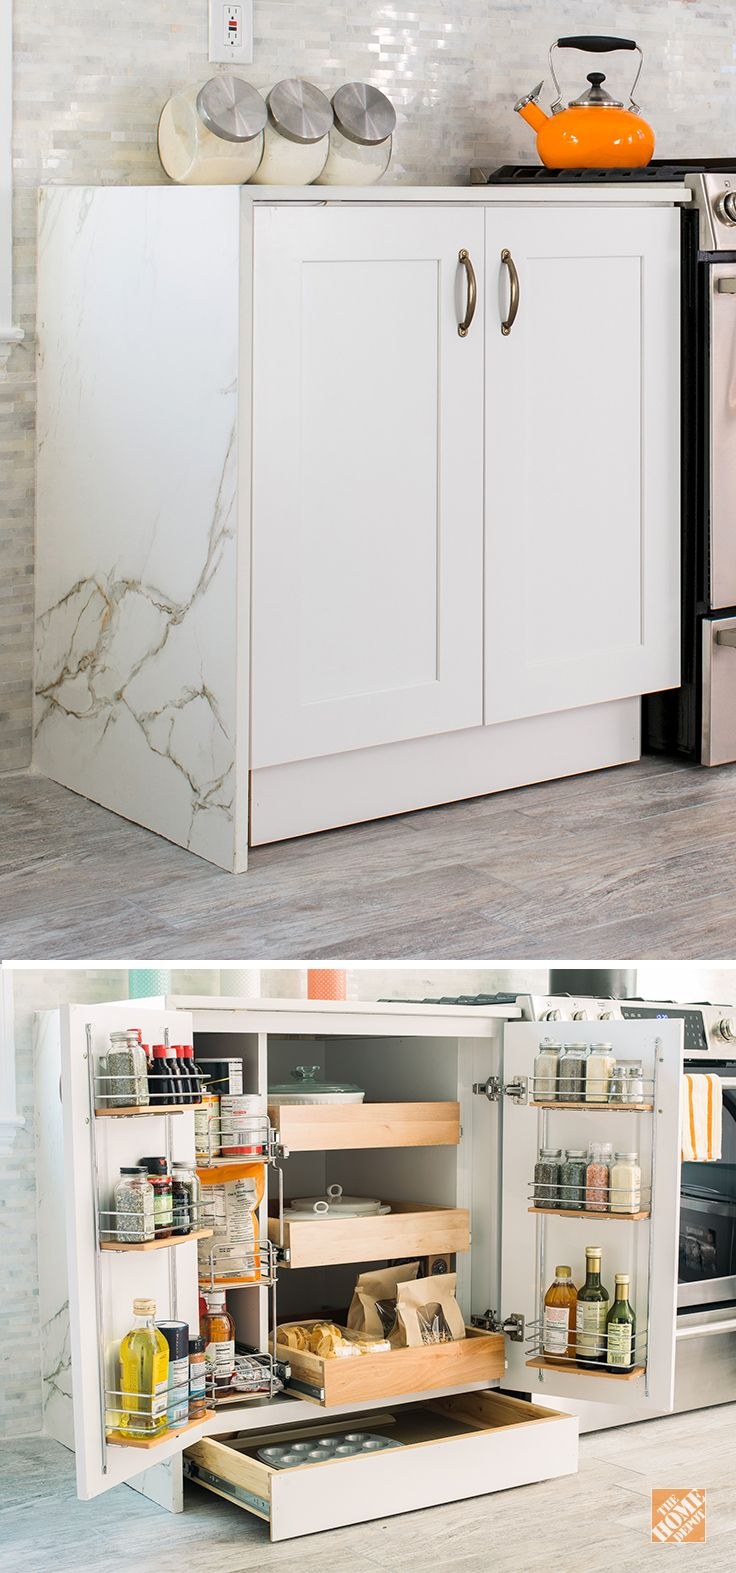 25 best ideas about inside kitchen cabinets on pinterest for Thomasville kitchen cabinets